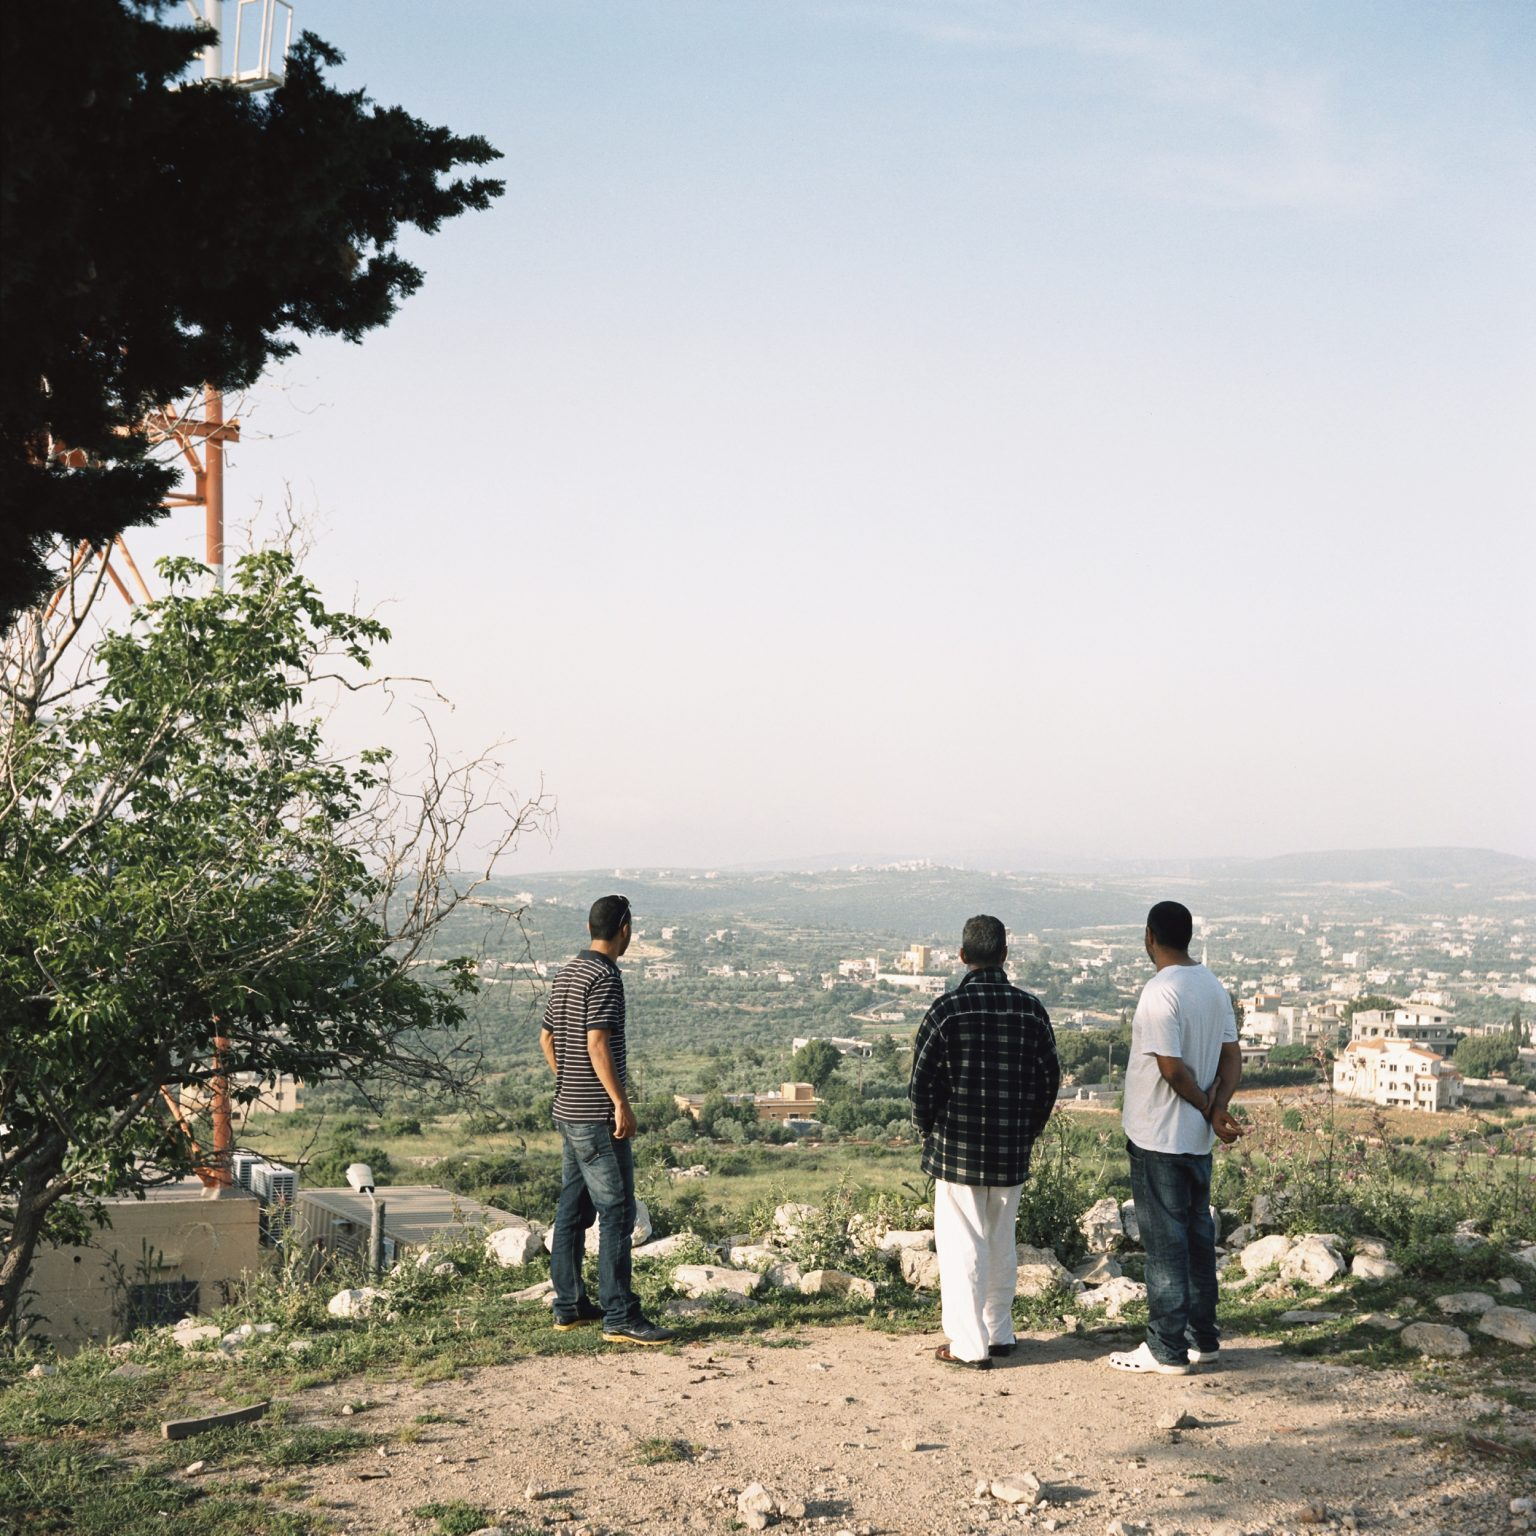 Arab al-Aramshe, Israel. Three residents of Arab al-Aramshe, a Bedouin village south of the Lebanese border, look the lebanese territory from a hill near the border area. Over the years, Aramshe residents have experienced attacks by Katyusha rockets launched from Southern Lebanon by the Hezbollah. During the 2006 Lebanon War, Fadiya Juma'a (age 60) and her daughters Samira (33) and Sultana (31) were killed by a Katyusha that fell in the garden of their home on August 5